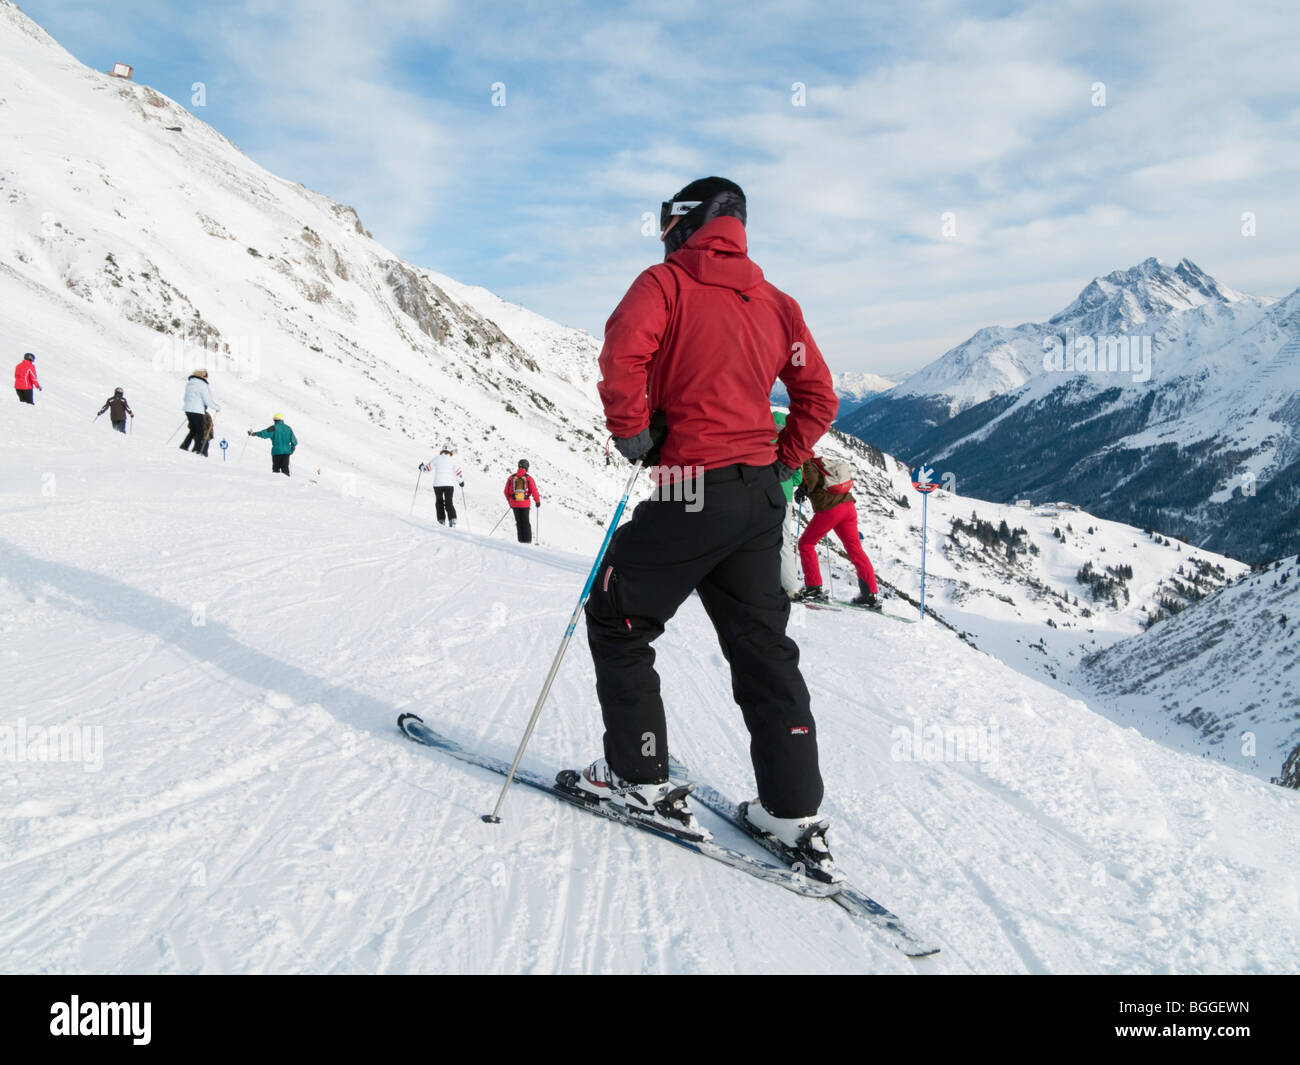 St Anton am Arlberg, Tyrol, Austria, Europe. Skier in red jacket on snow covered ski slopes in the Austrian Alps Stock Photo